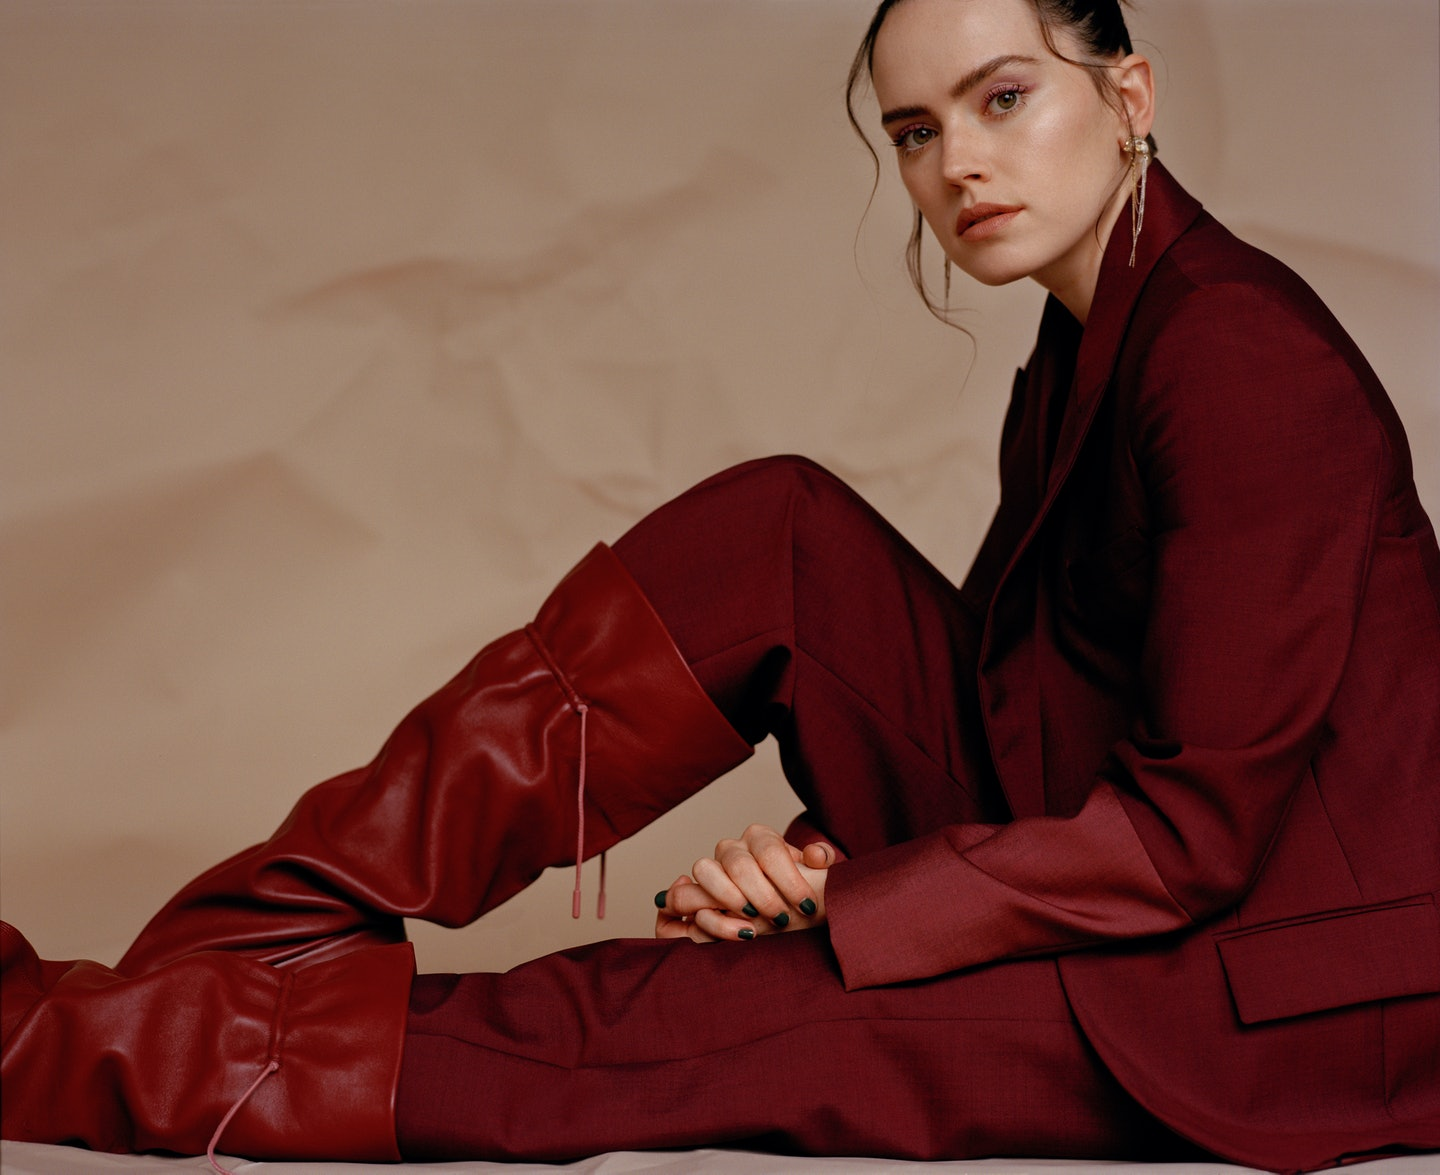 TZR cover star Daisy Ridley appears sitting down while wearing an all red Roksanda suit.